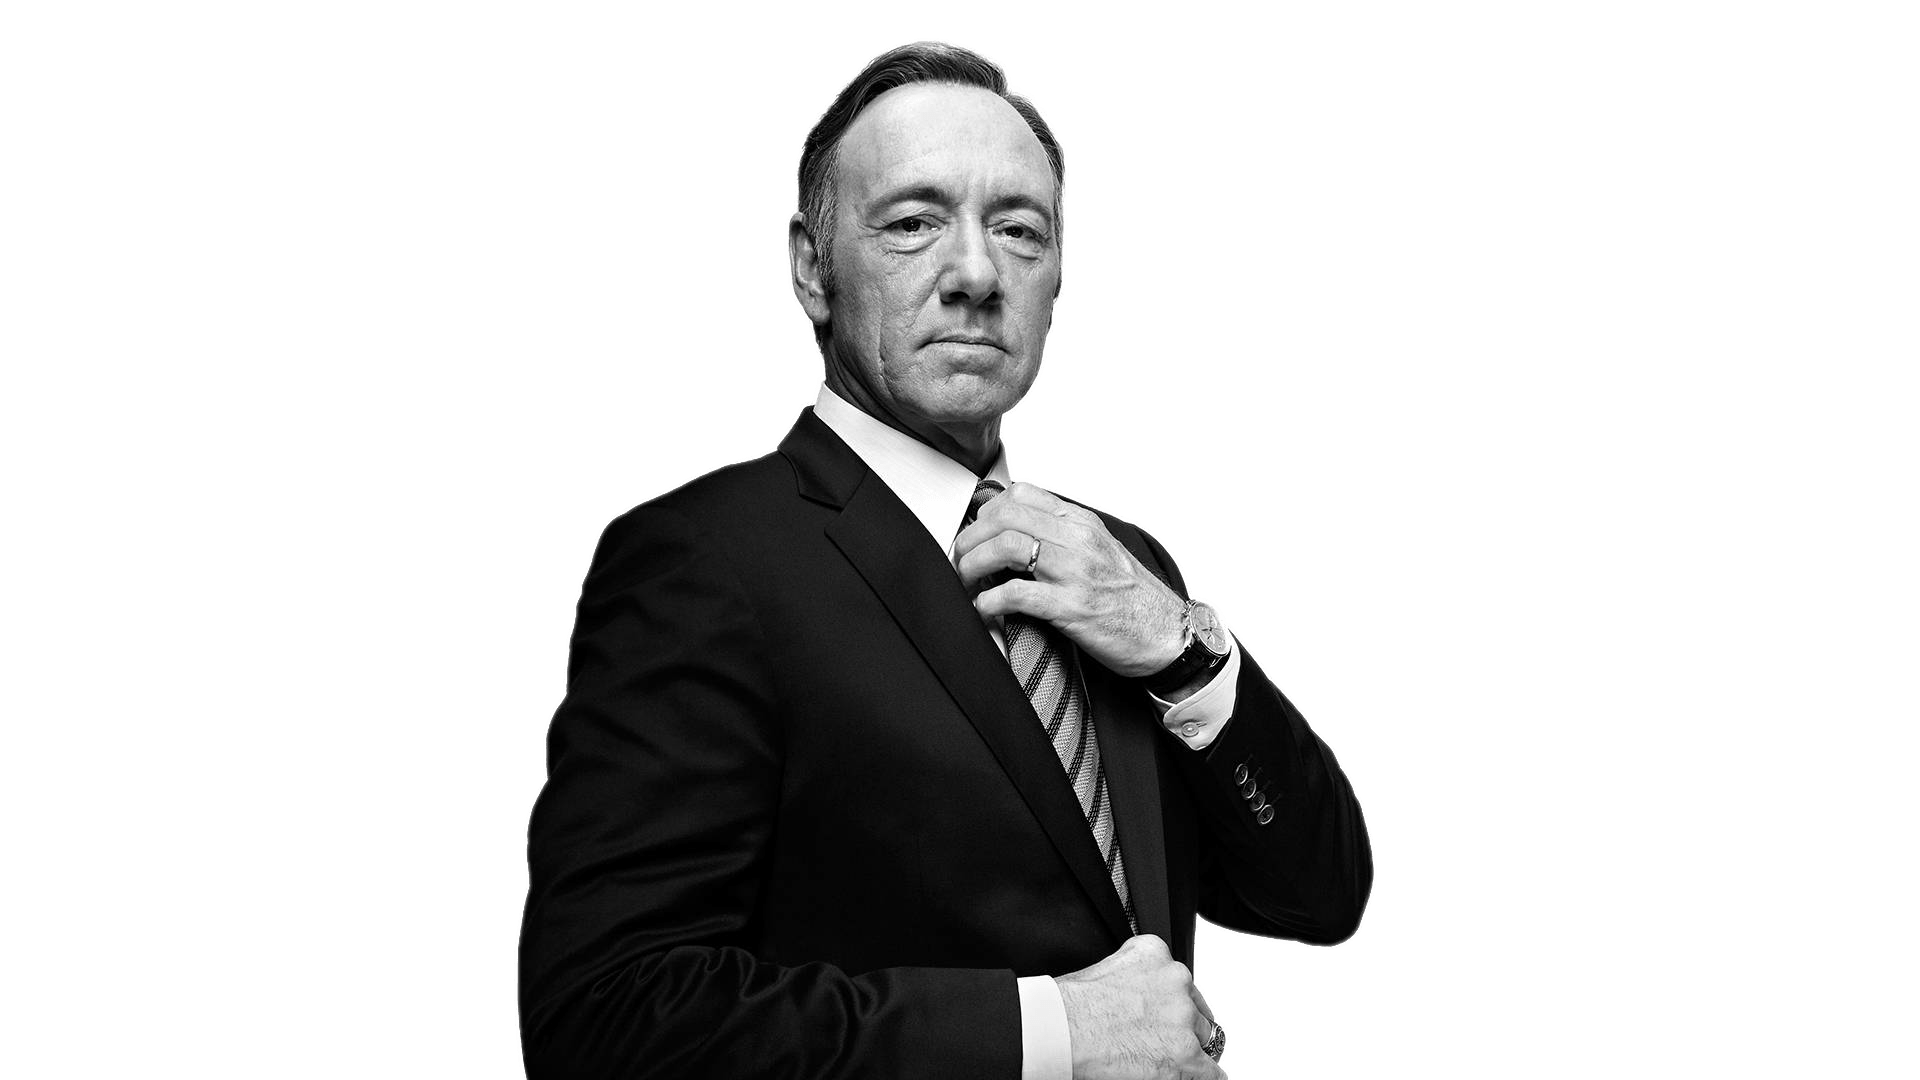 House of cards png. Kevin space transparent stickpng